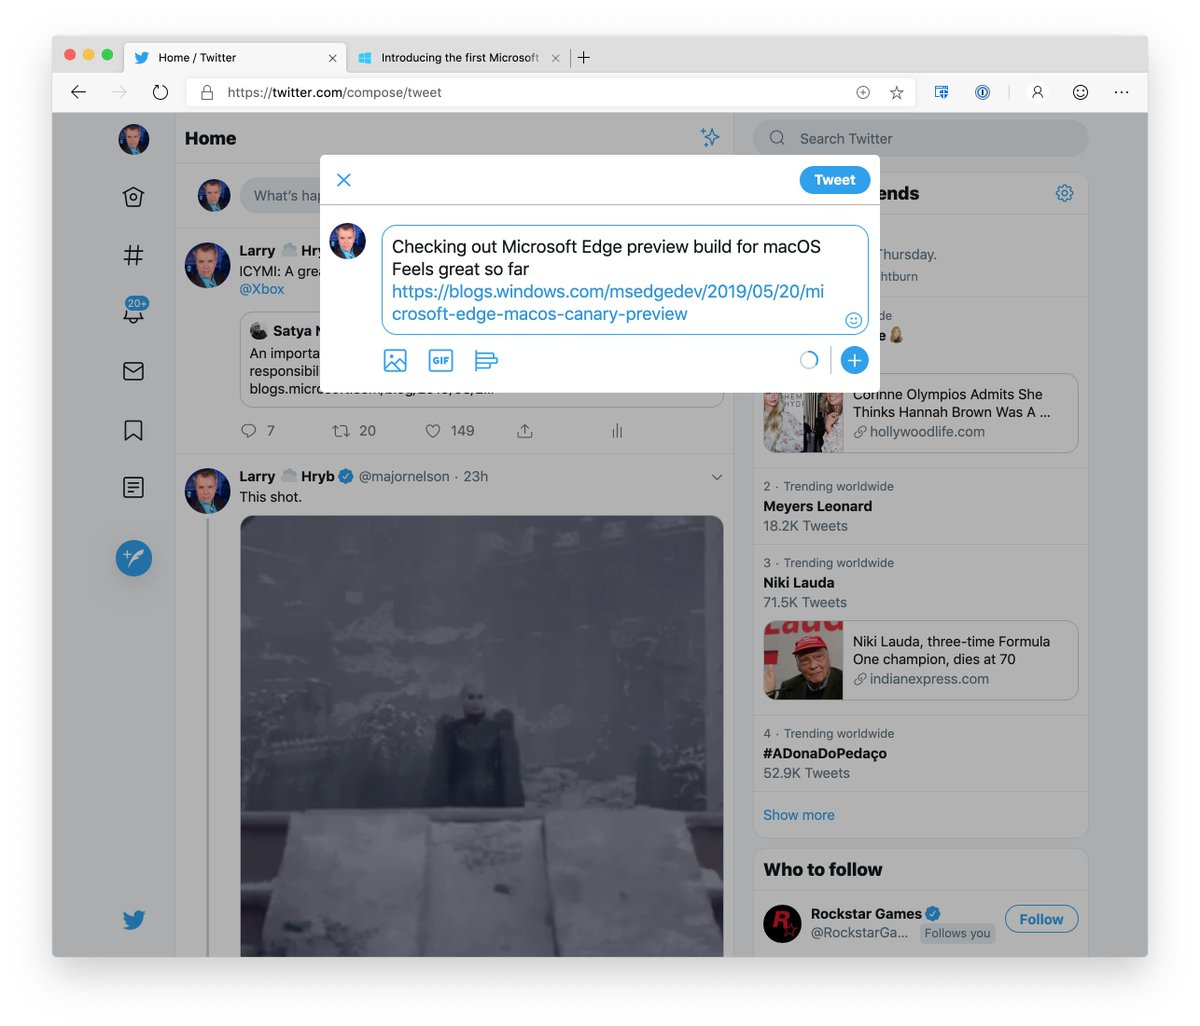 "Checking out Microsoft Edge preview build for macOS Feels great so far <a href=""https://blogs.windows.com/msedgedev/2019/05/20/microsoft-edge-macos-canary-preview"" rel=""nofollow"" target=""_blank"" title=""https://blogs.windows.com/msedgedev/2019/05/20/microsoft-edge-macos-canary-preview"">blogs.windows.com/msedgedev/2019…</a> https://t.co/G91rlLkAD1."